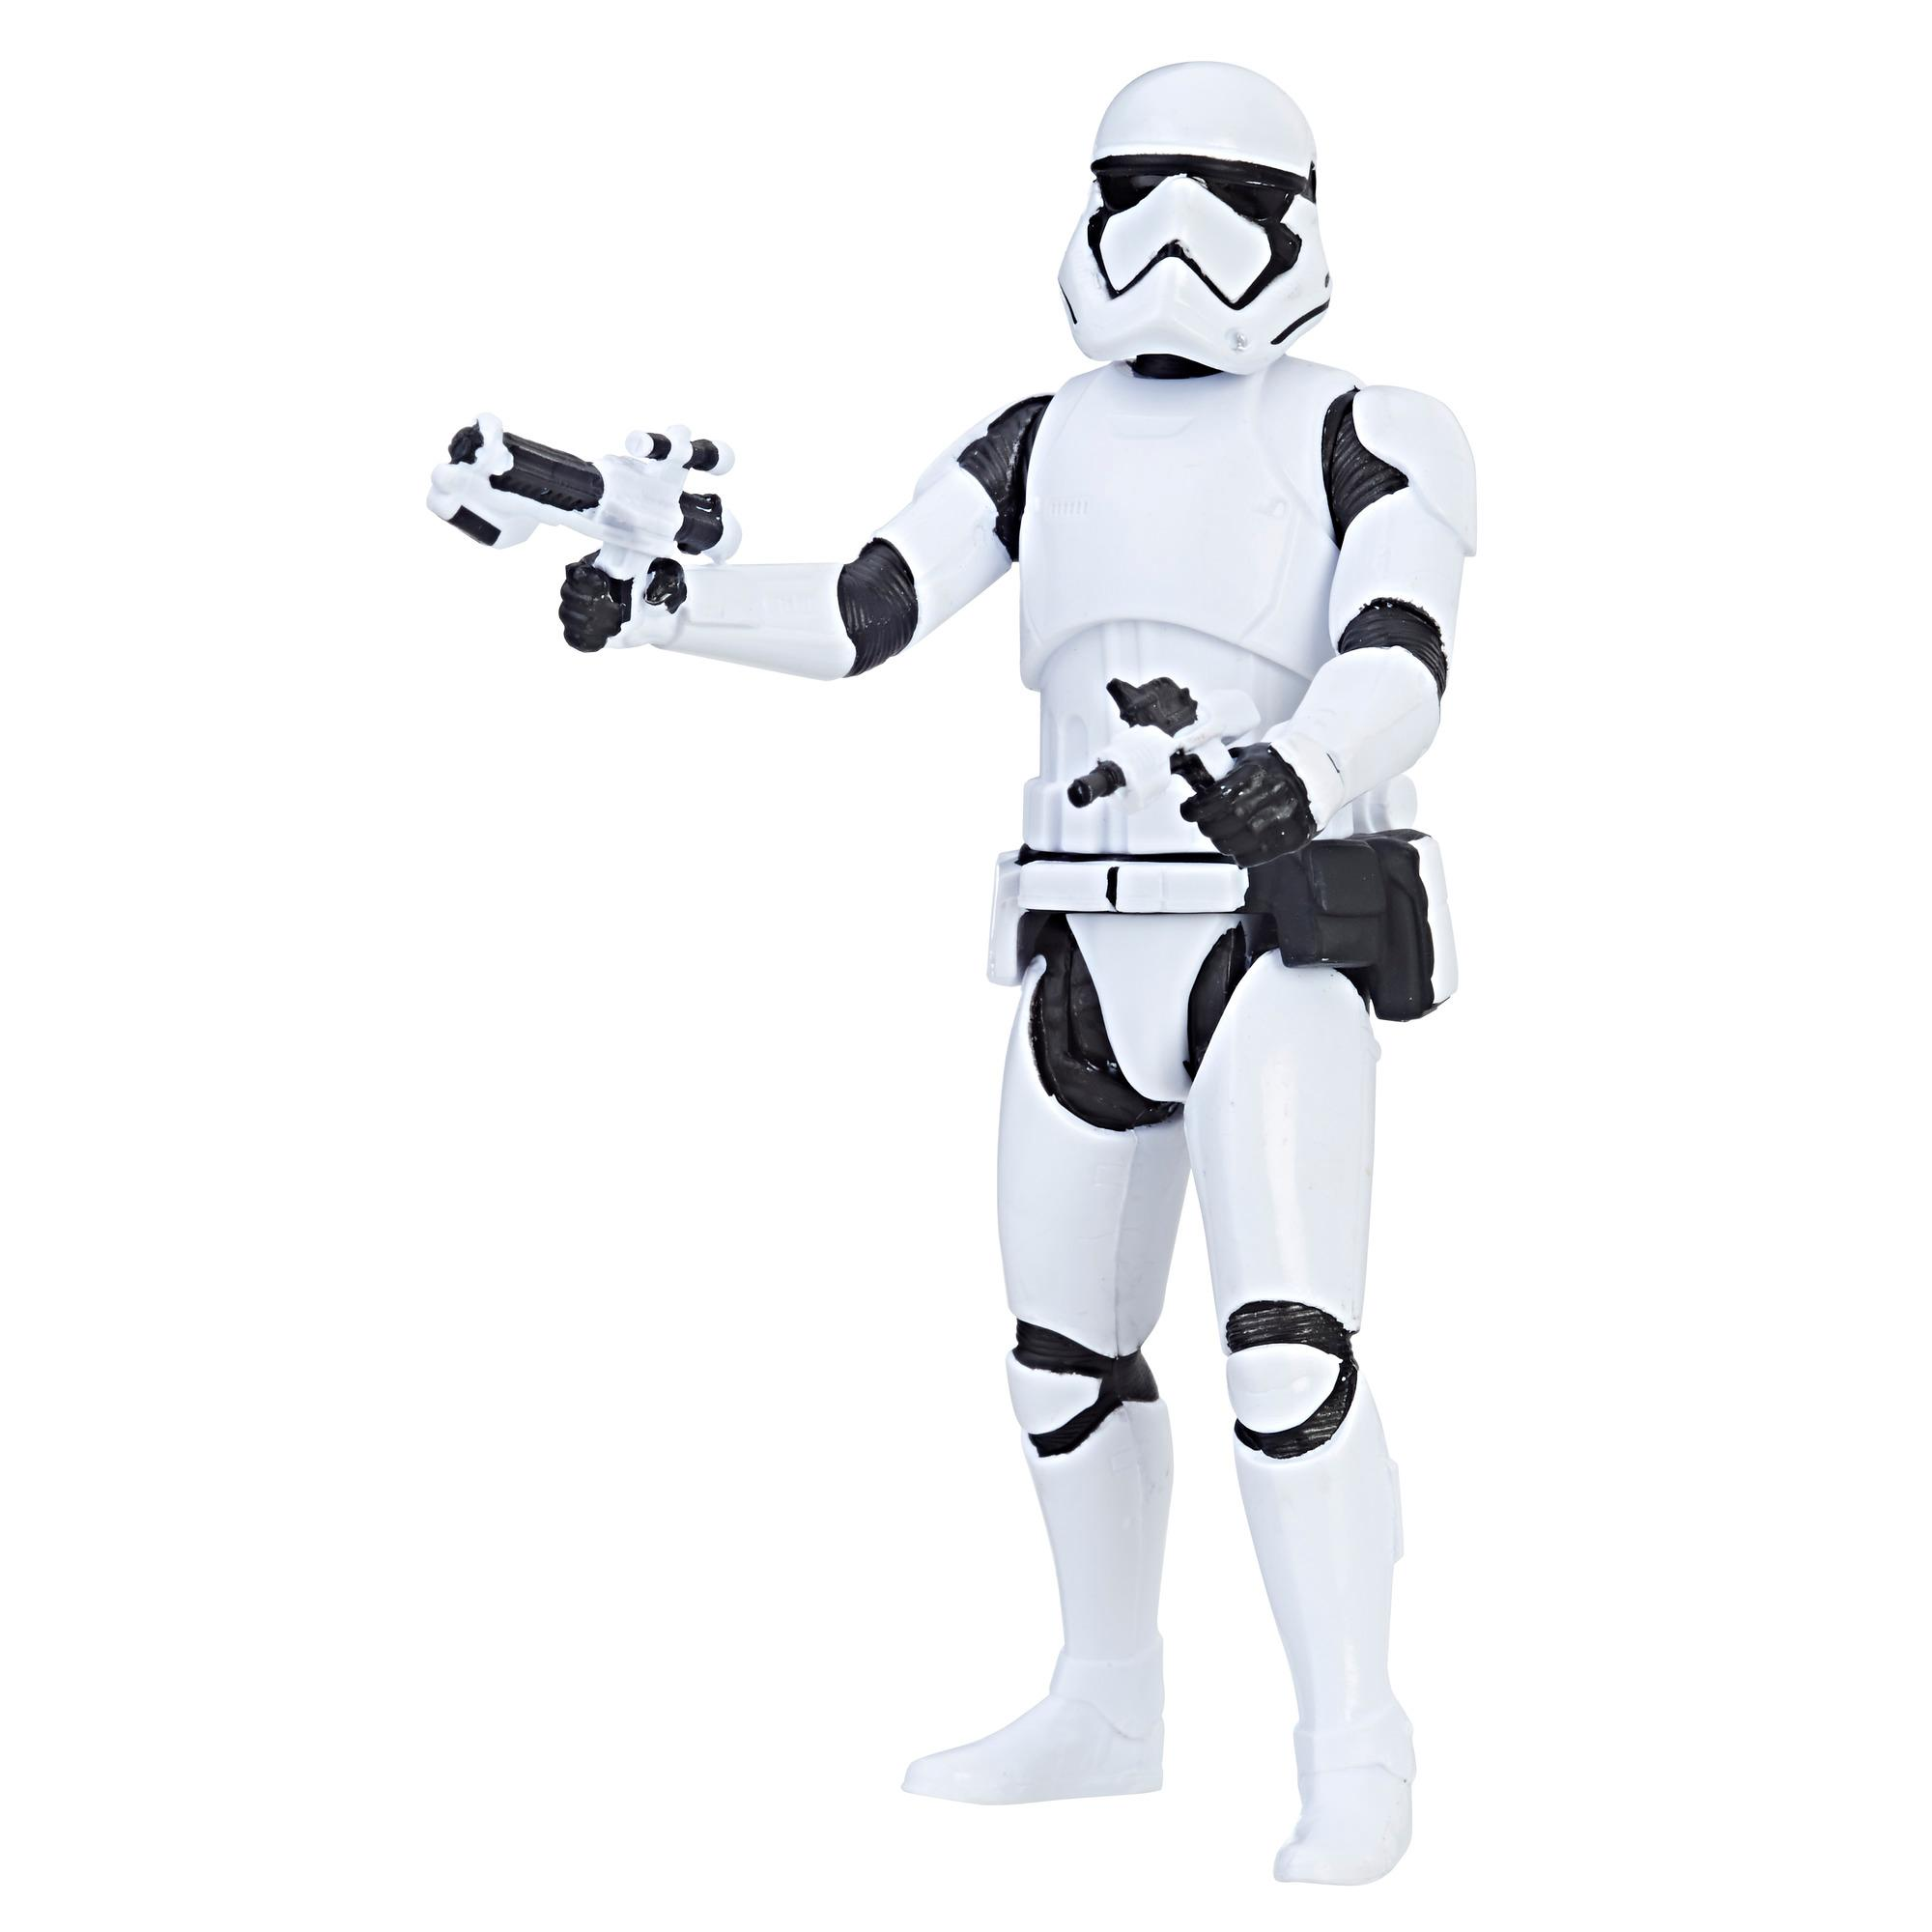 STAR WARS STORMTROOPER ΠΡΩΤΟΥ ΤΑΓΜΑΤΟΣ FORCE LINK